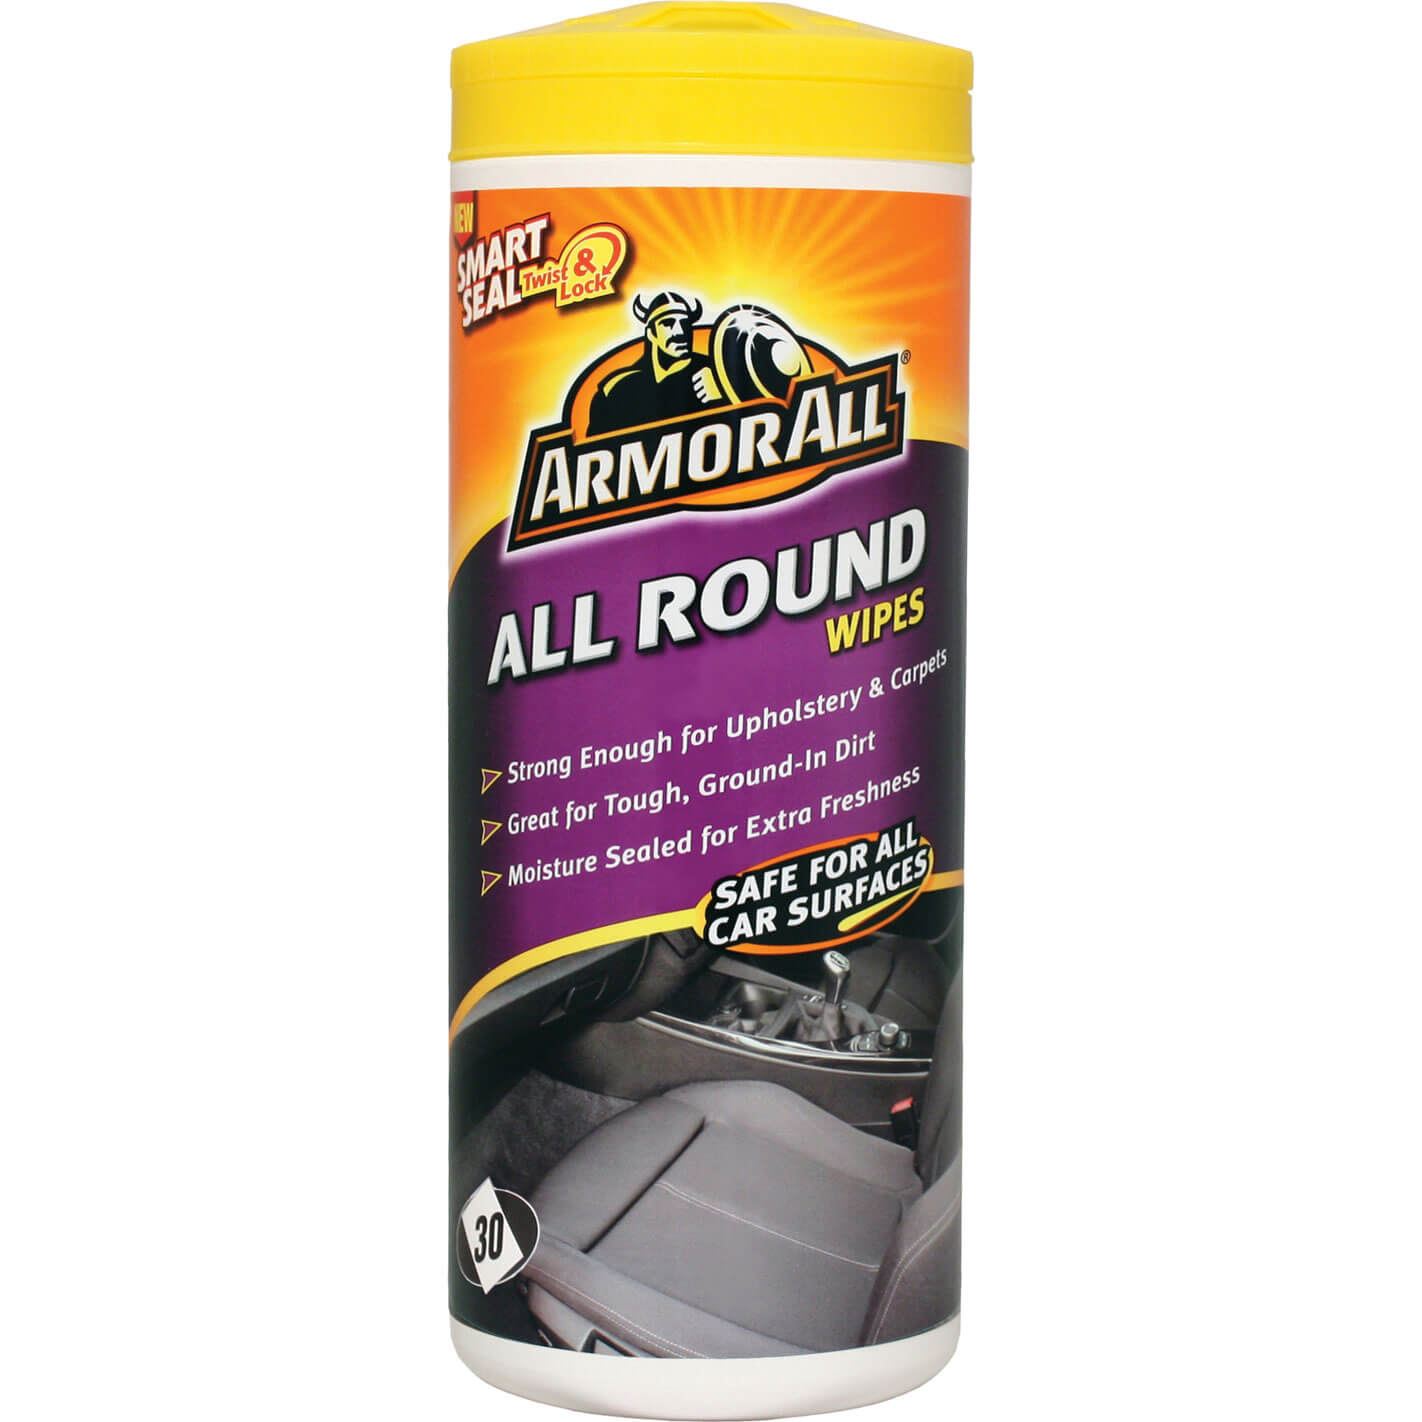 Armor All Carpet & Seat Wipes for Car Upholstery Pack of 30